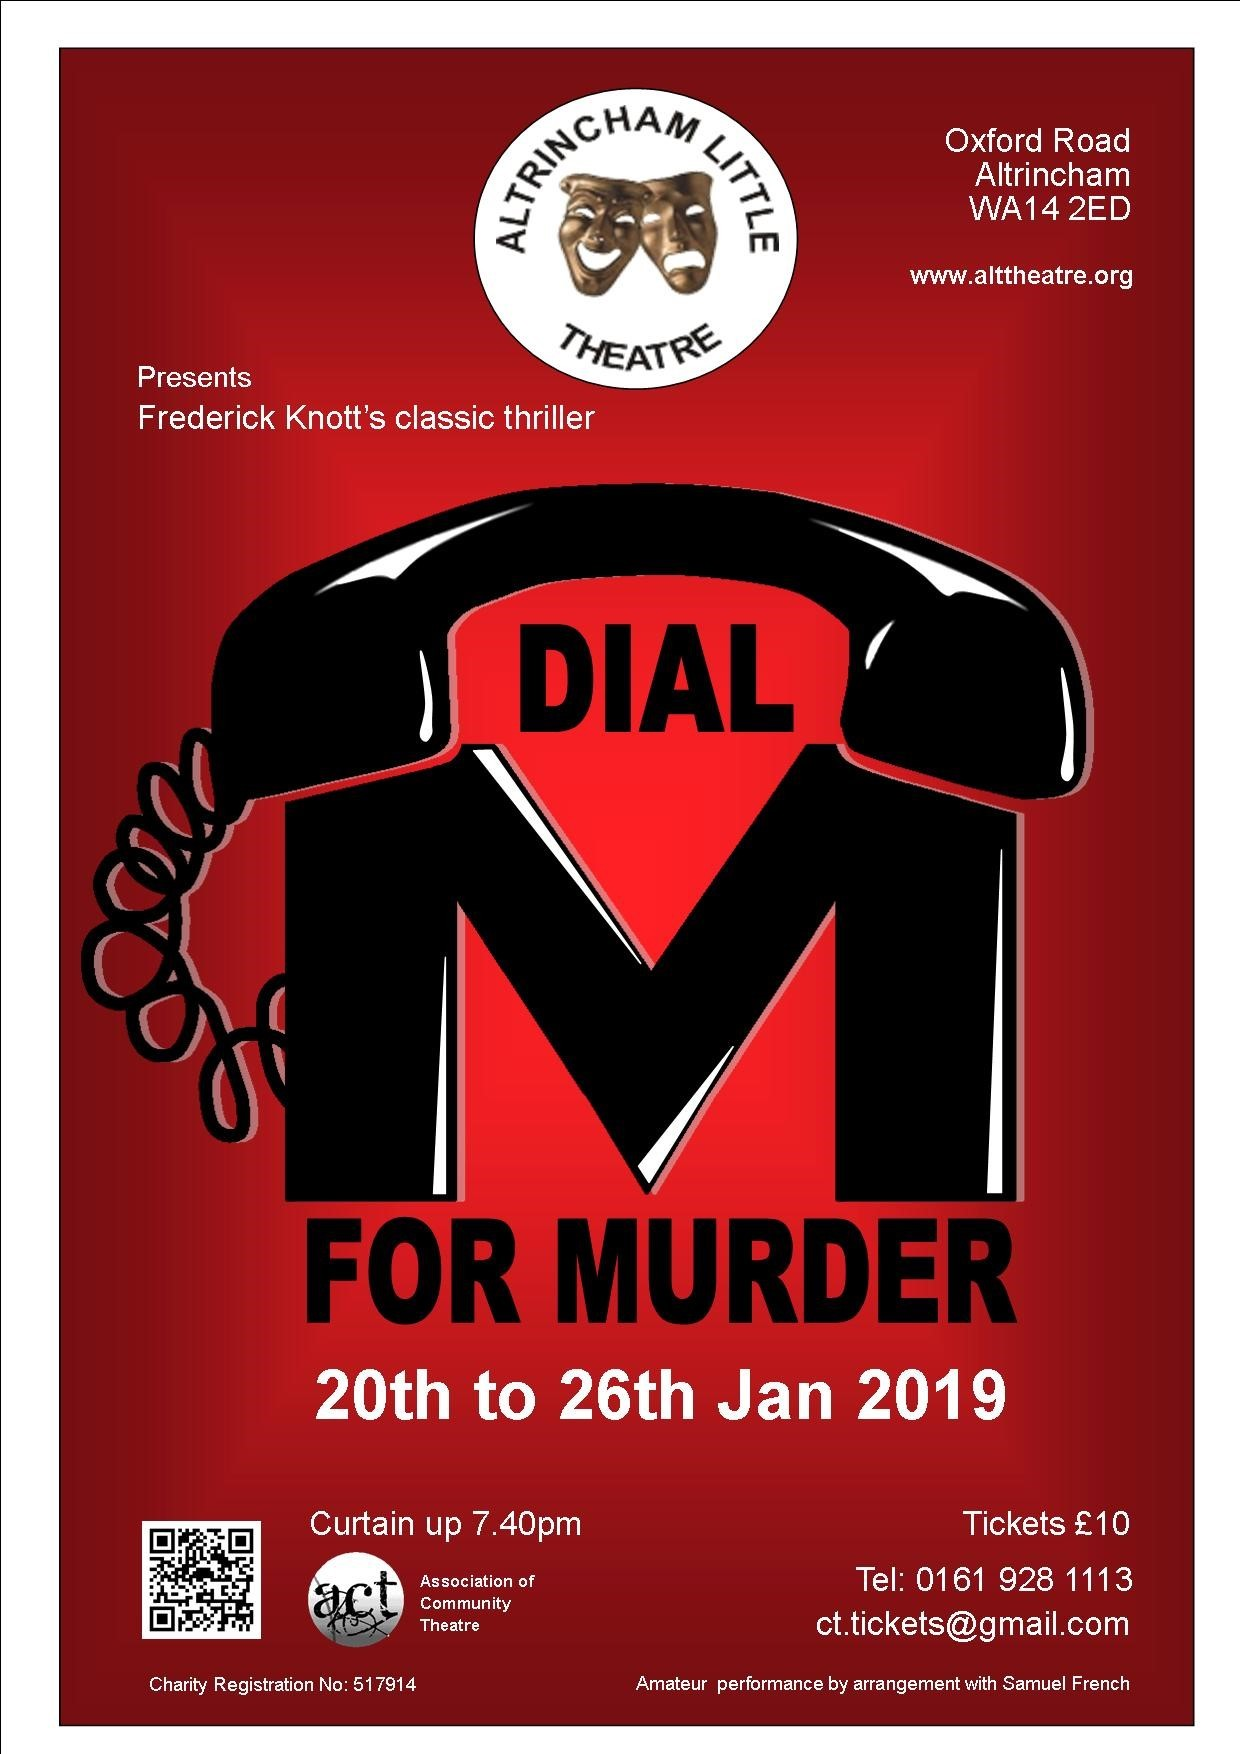 Dial M for Murder, based on the 1954 film by Alfred Hitchcock, is being brought to the stage by Altrincham Little Theatre.